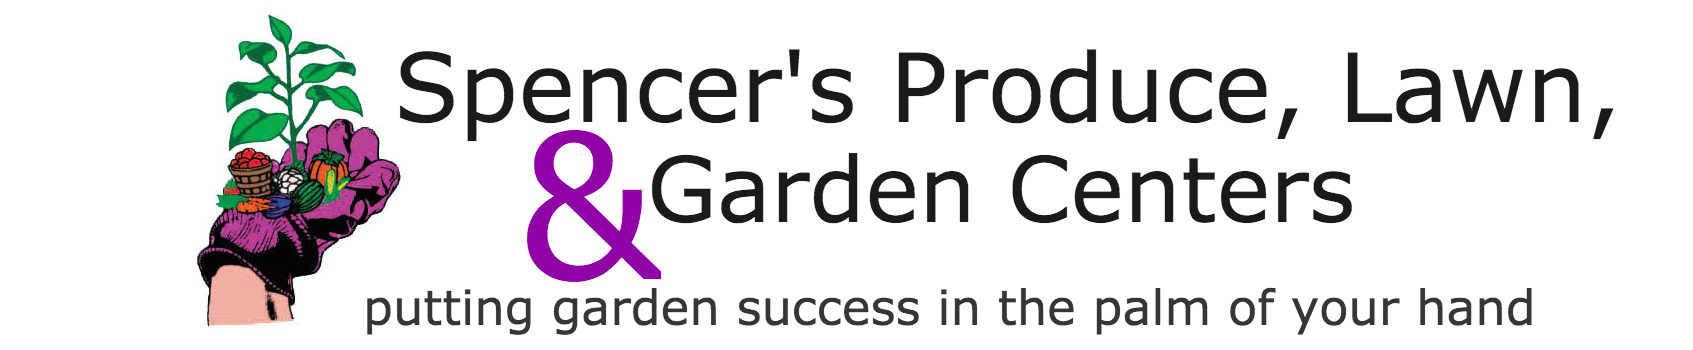 Company logo of Spencer's Lawn & Garden Centers